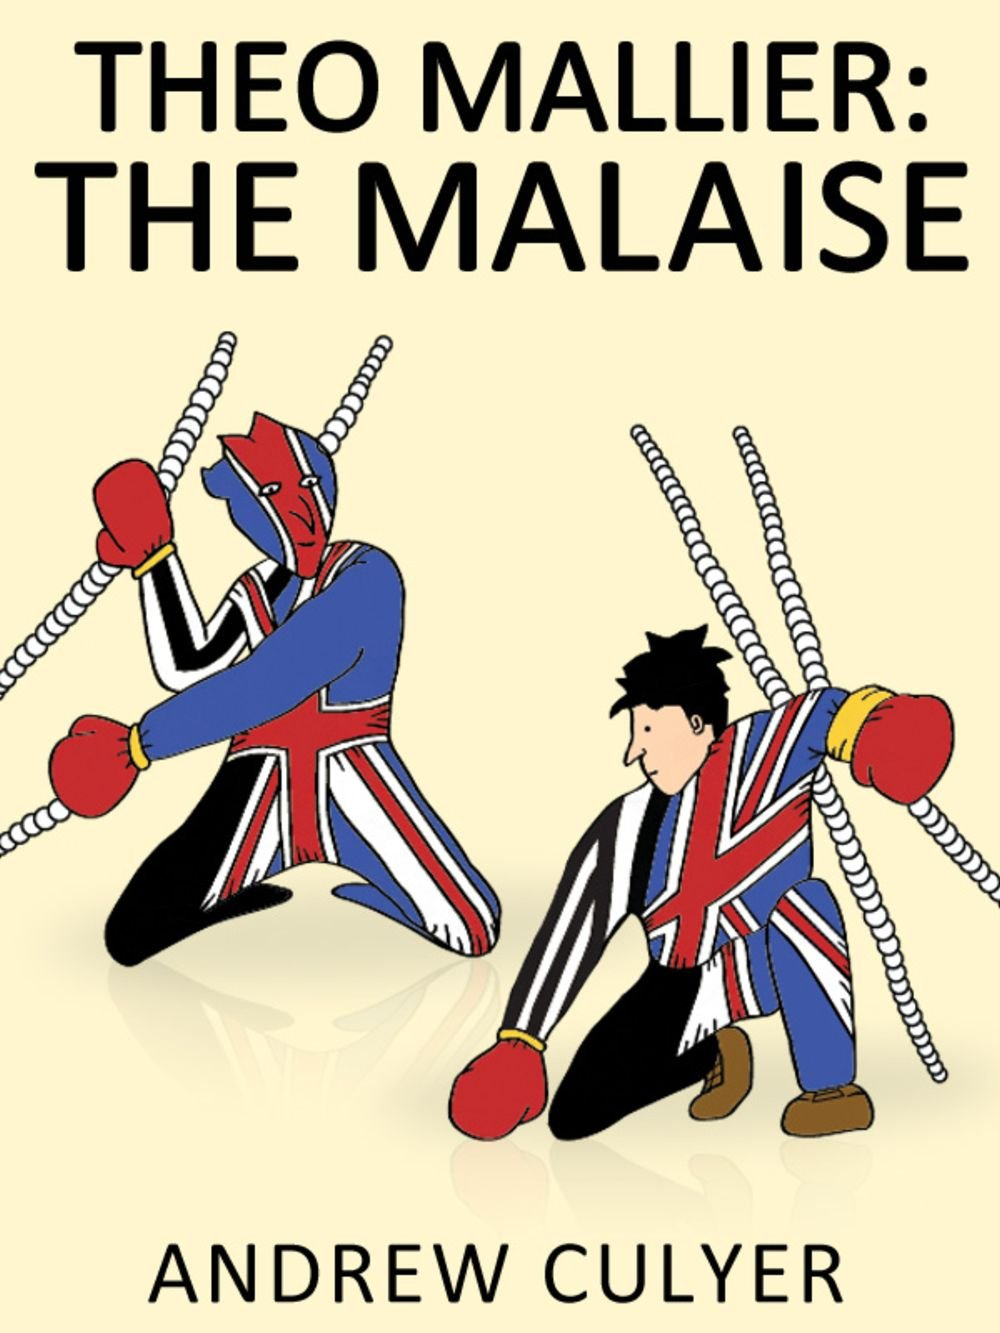 Theo Mallier: The Malaise (Political Fiction) (The Theo Mallier Story Book 6) (English Edition)